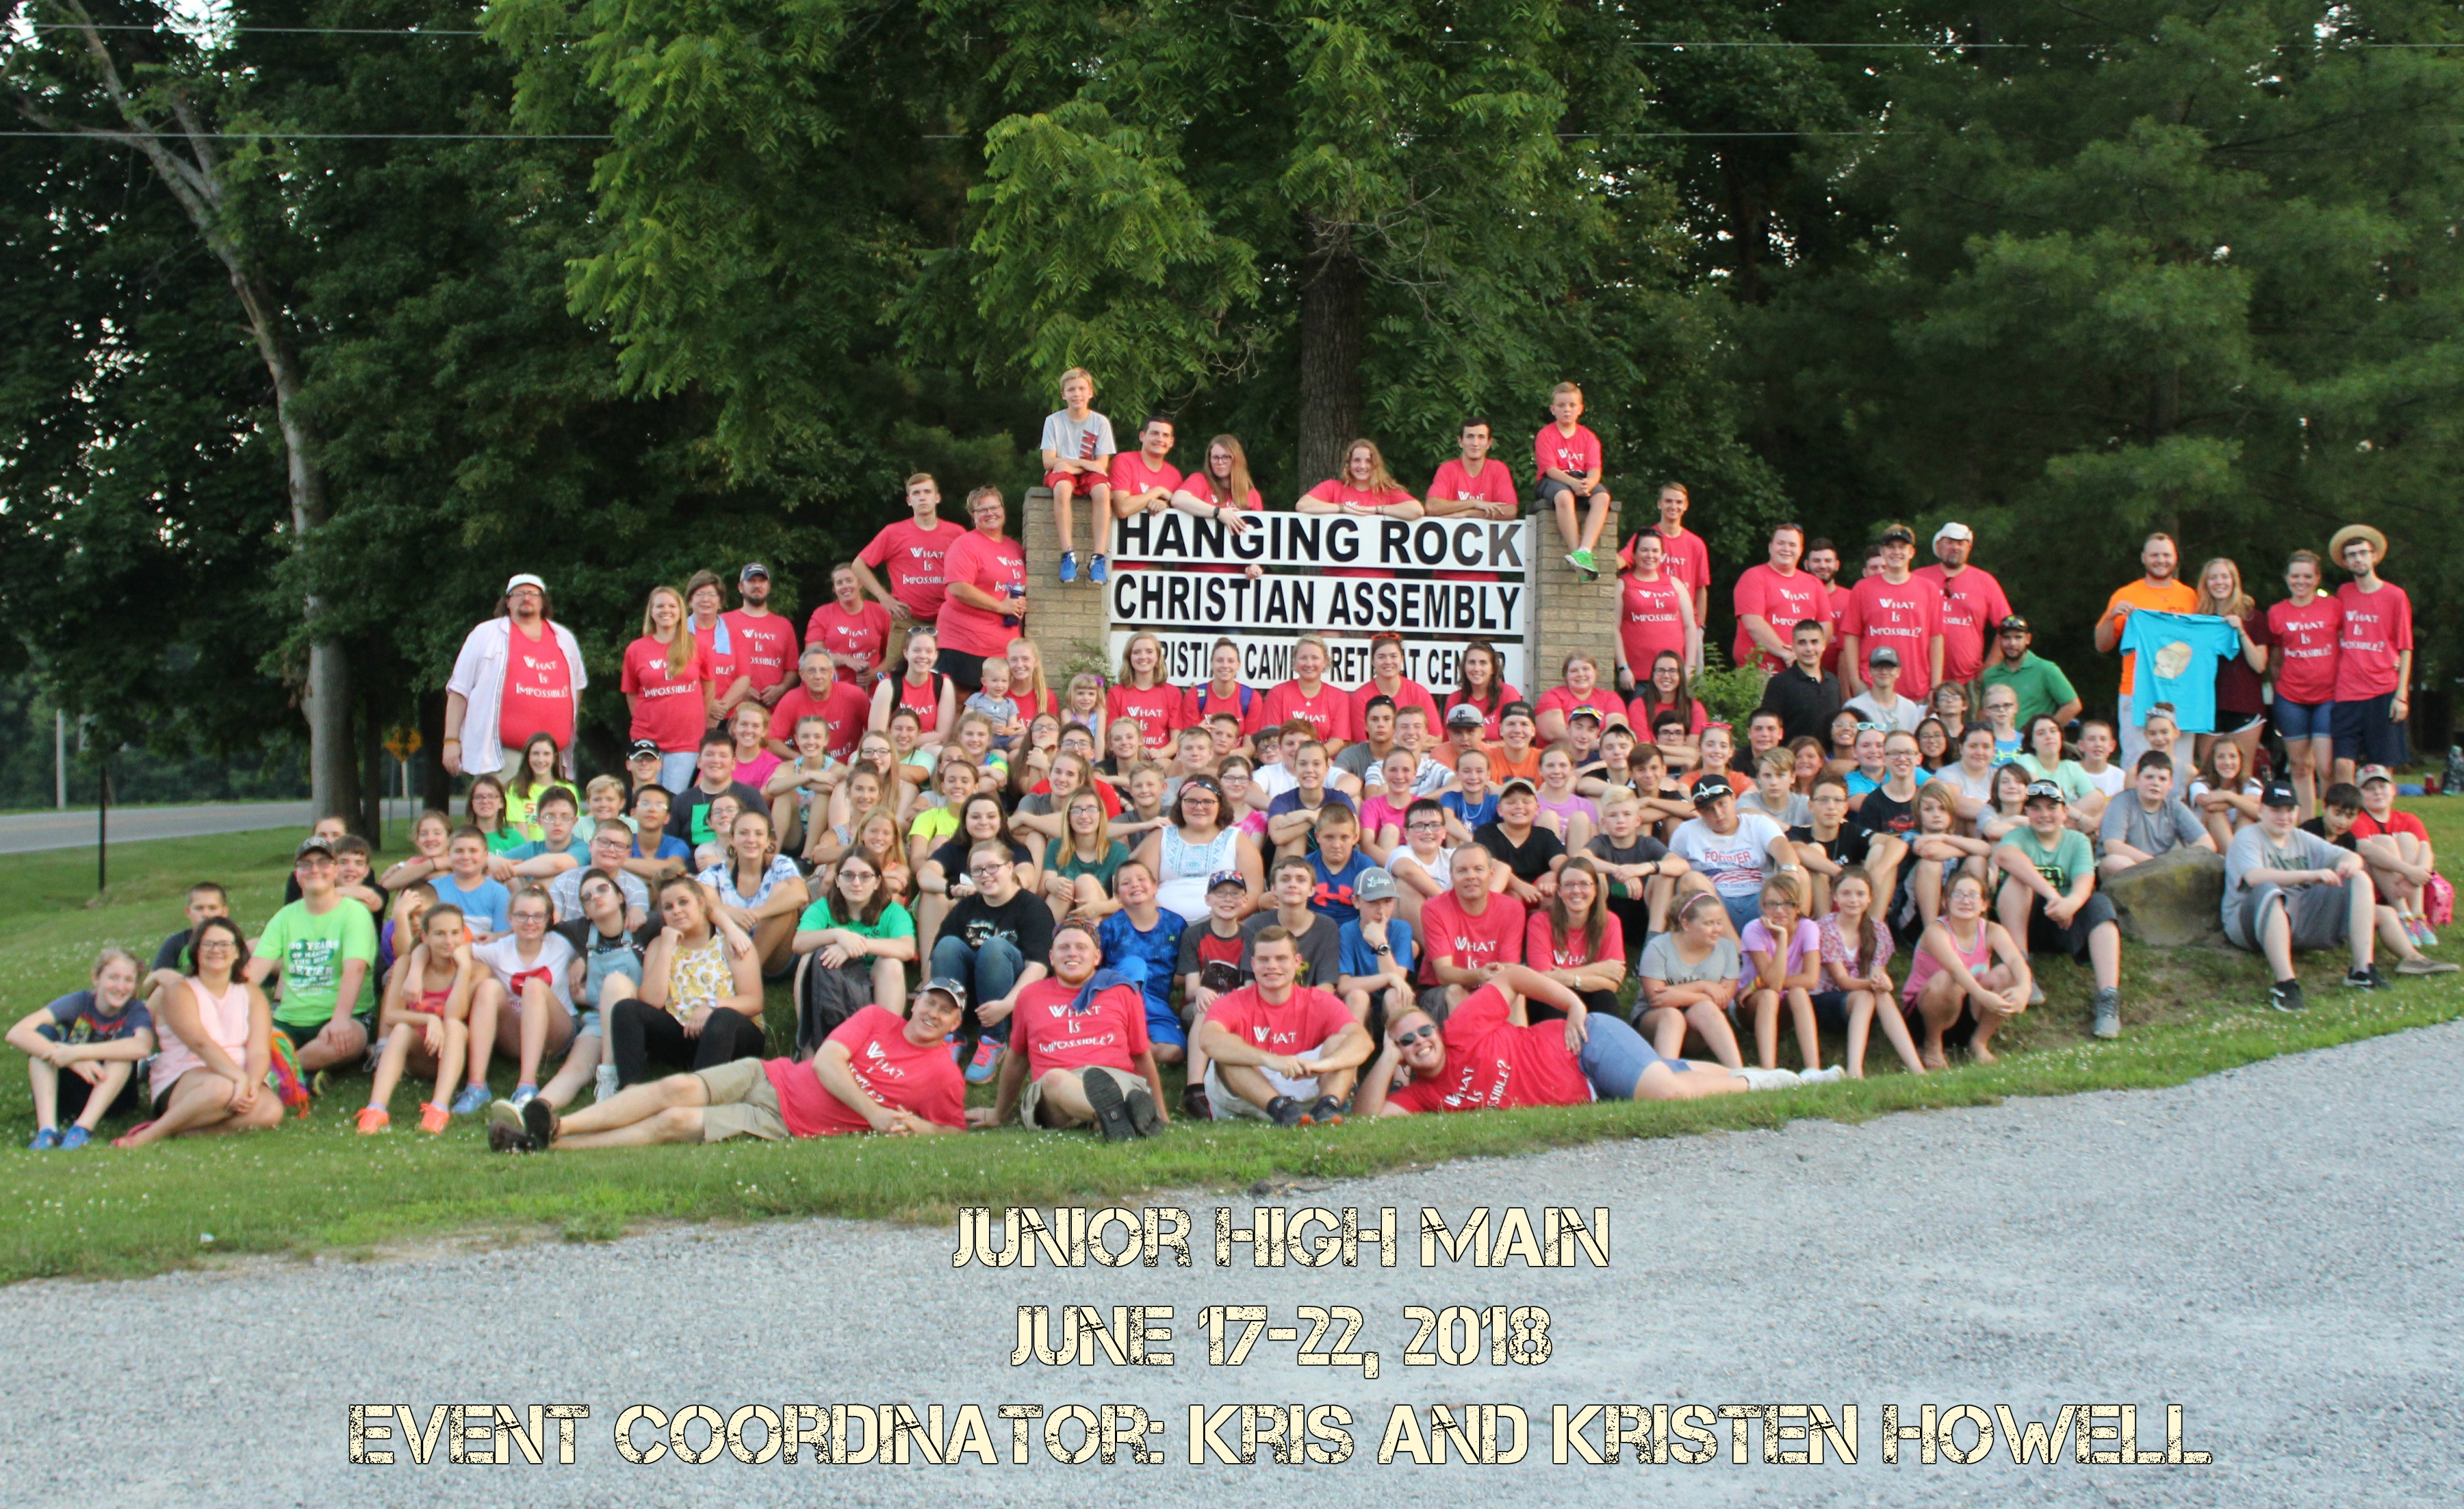 Junior High Main Camp